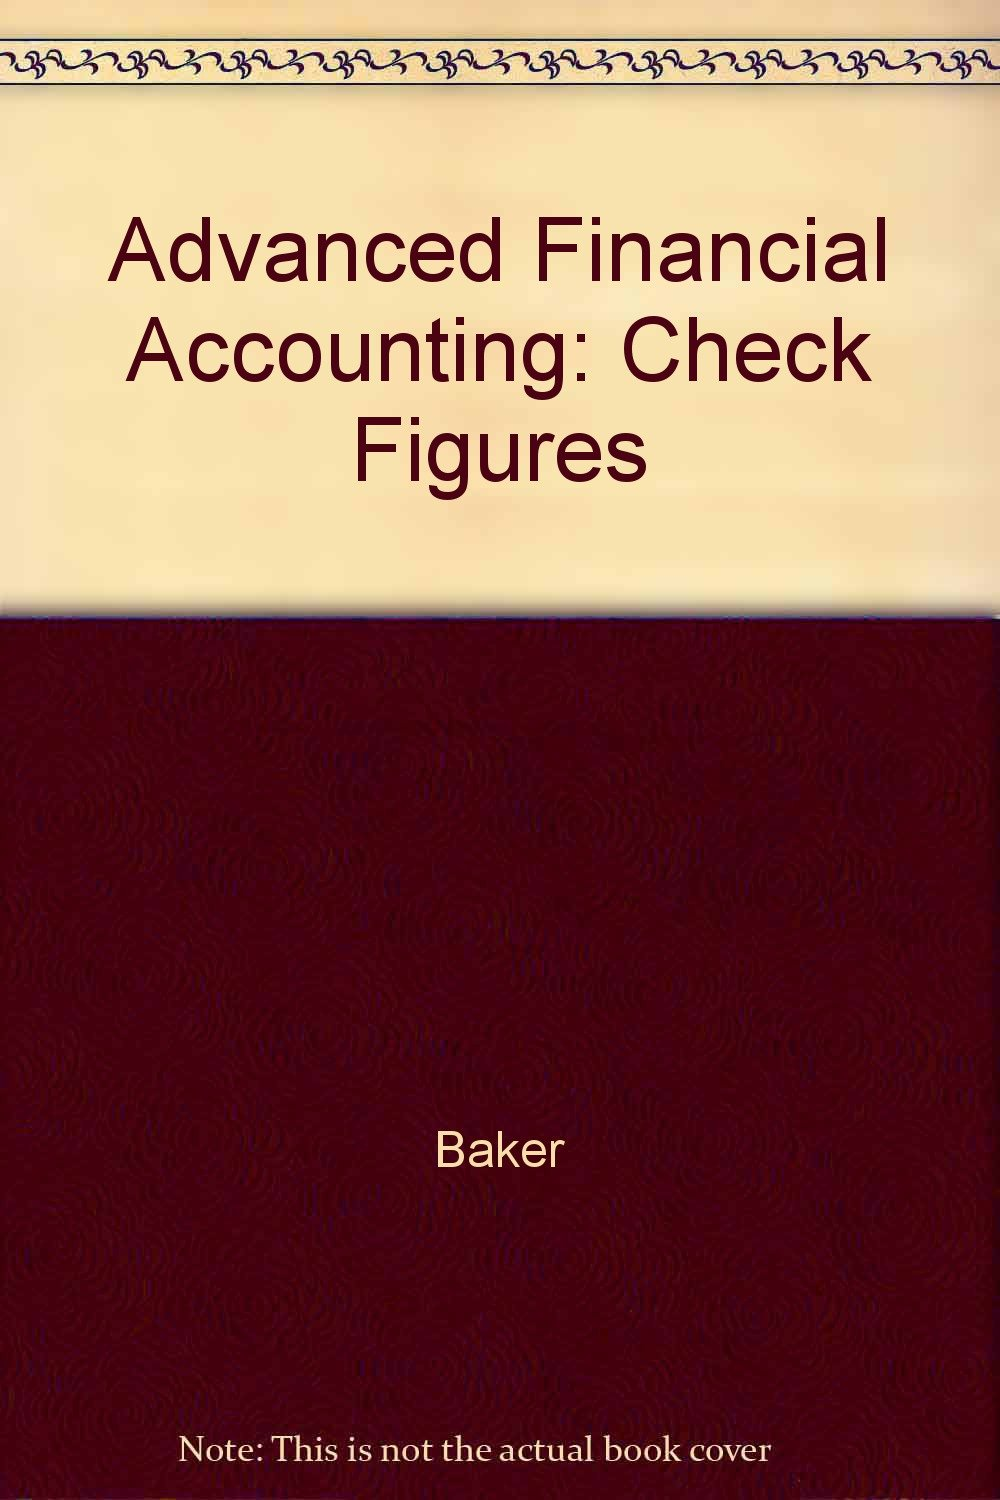 Advanced Financial Accounting: Check Figures: Baker, Lembke: 9780070045477:  Amazon.com: Books